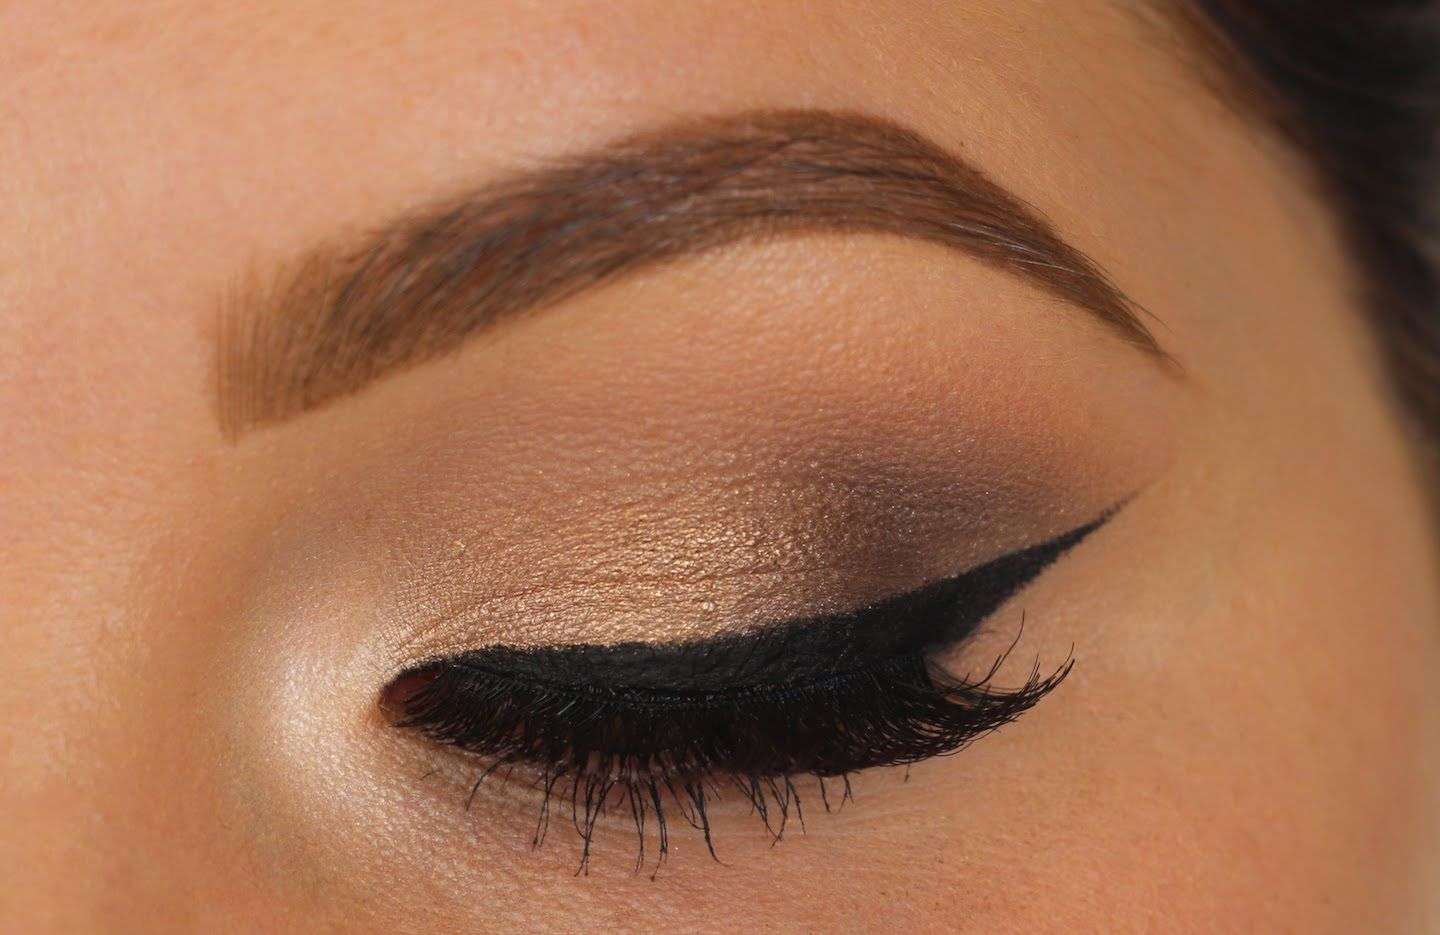 Soft Eyeshadow w/ Bold Wing | Holiday Makeup: Used the Two Faced ...